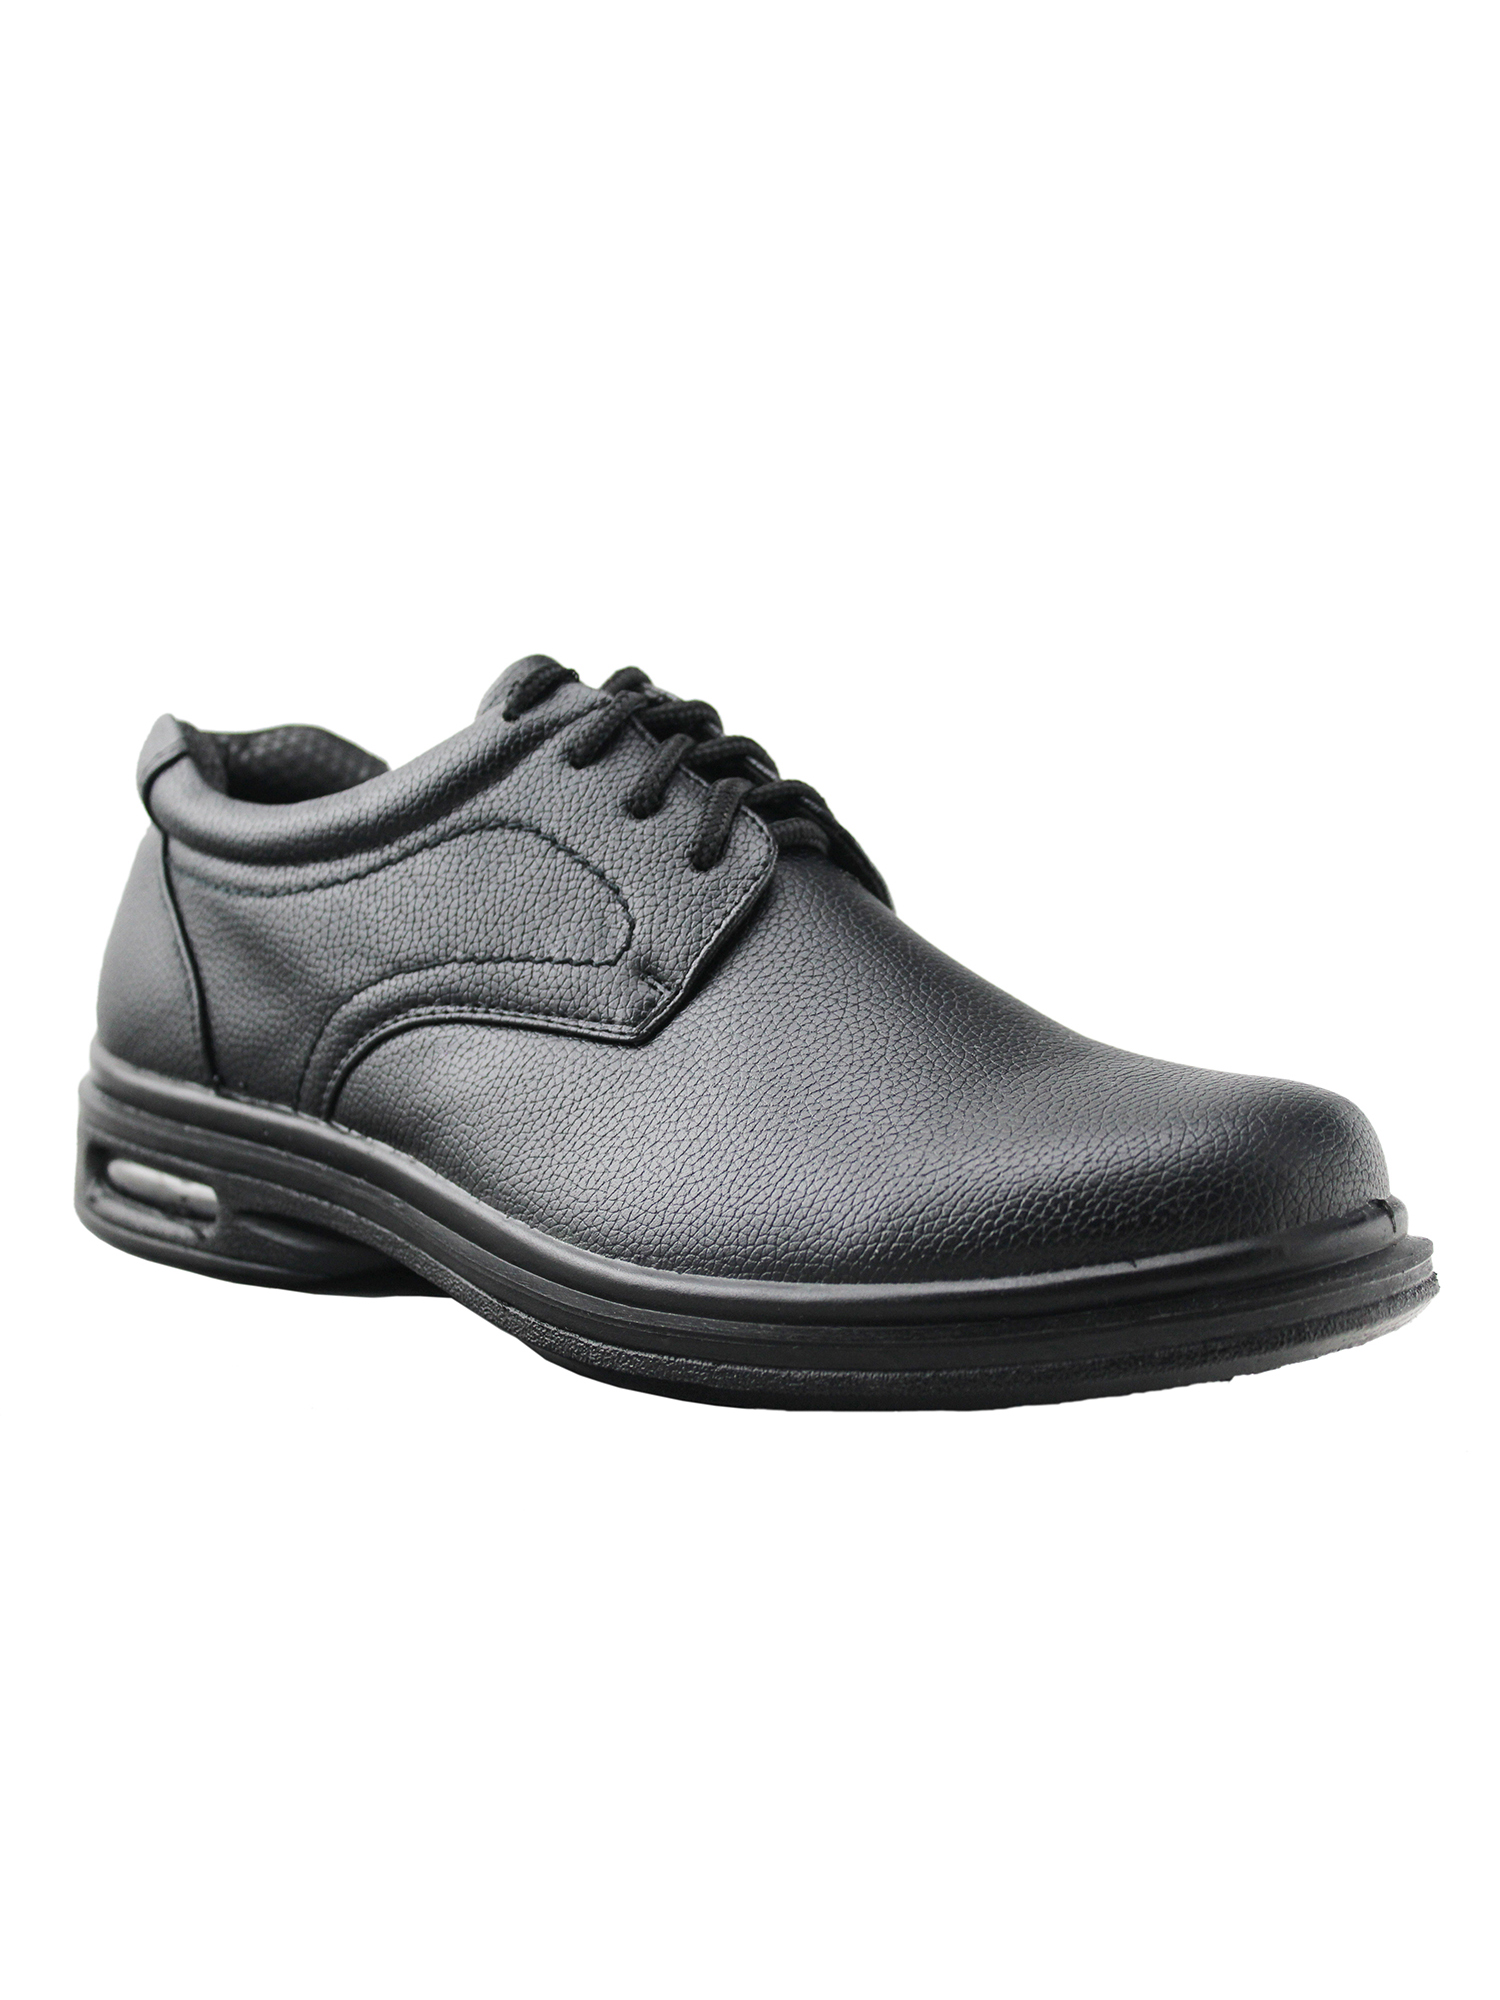 Details about  /Men Faux Leather Shoes Work Round Toe Business Oxfords Lace up Non-slip Casual L